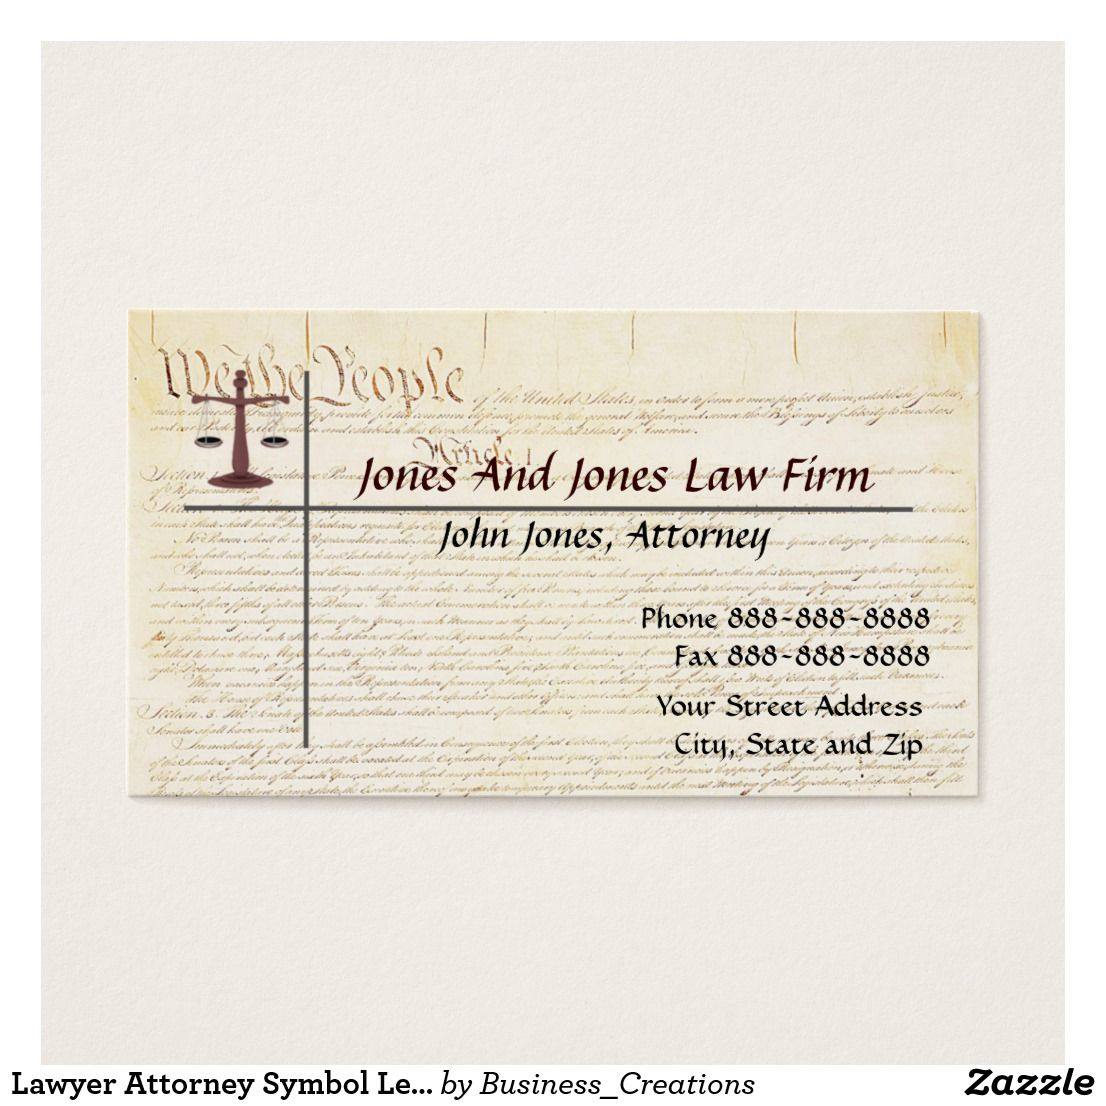 Lawyer attorney symbol legal business card legal business and symbols lawyer attorney symbol legal business card reheart Images